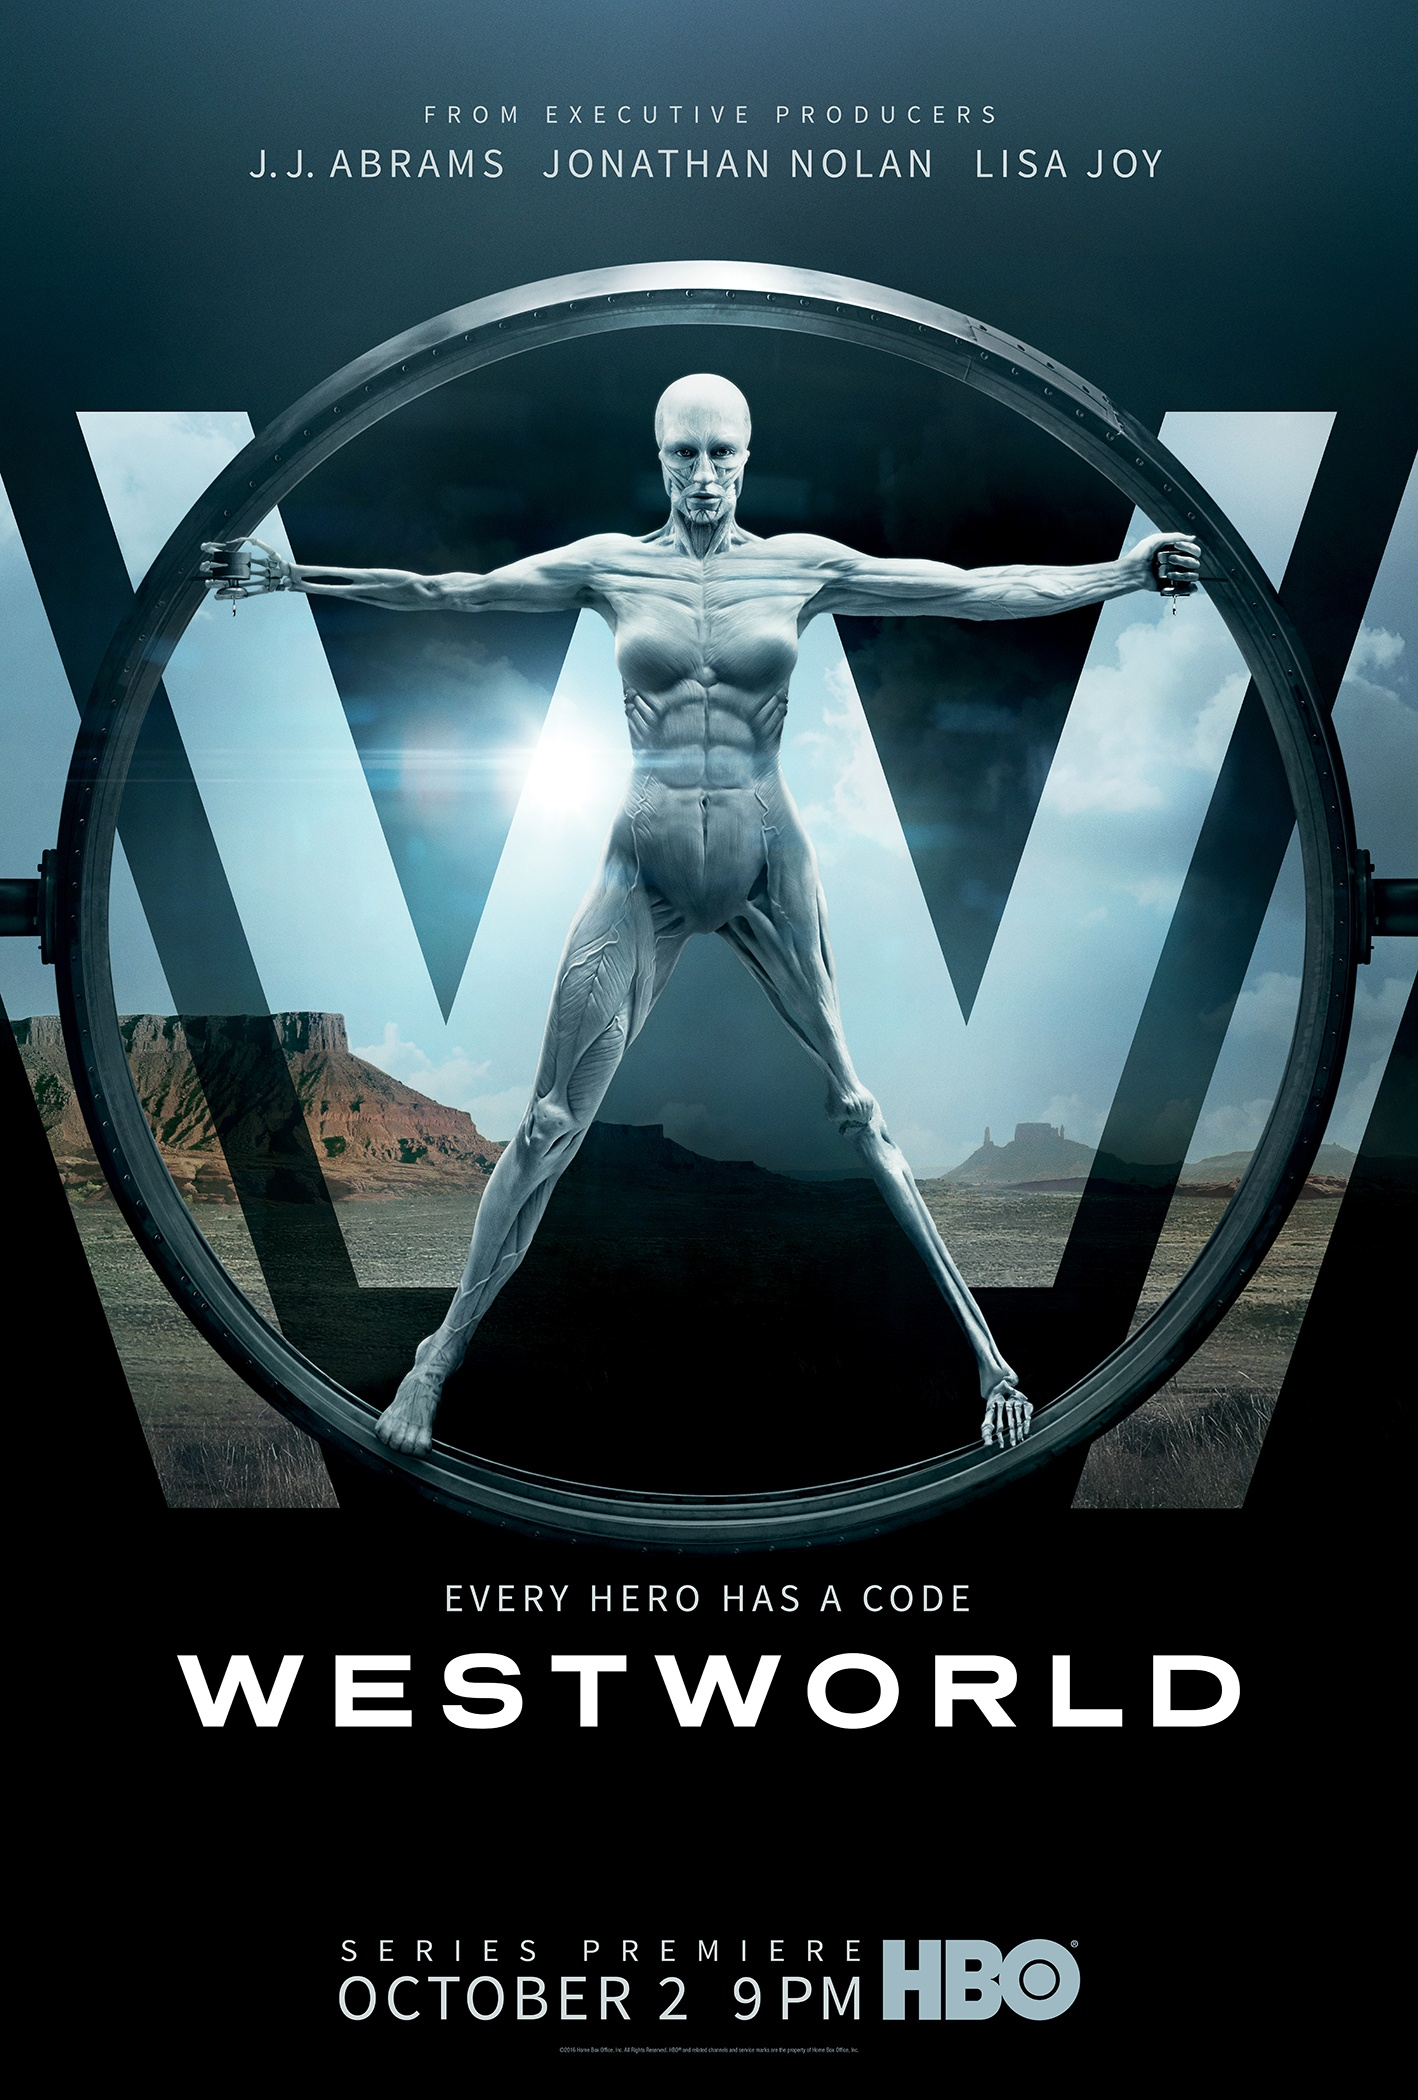 Image Media for Discover Westworld